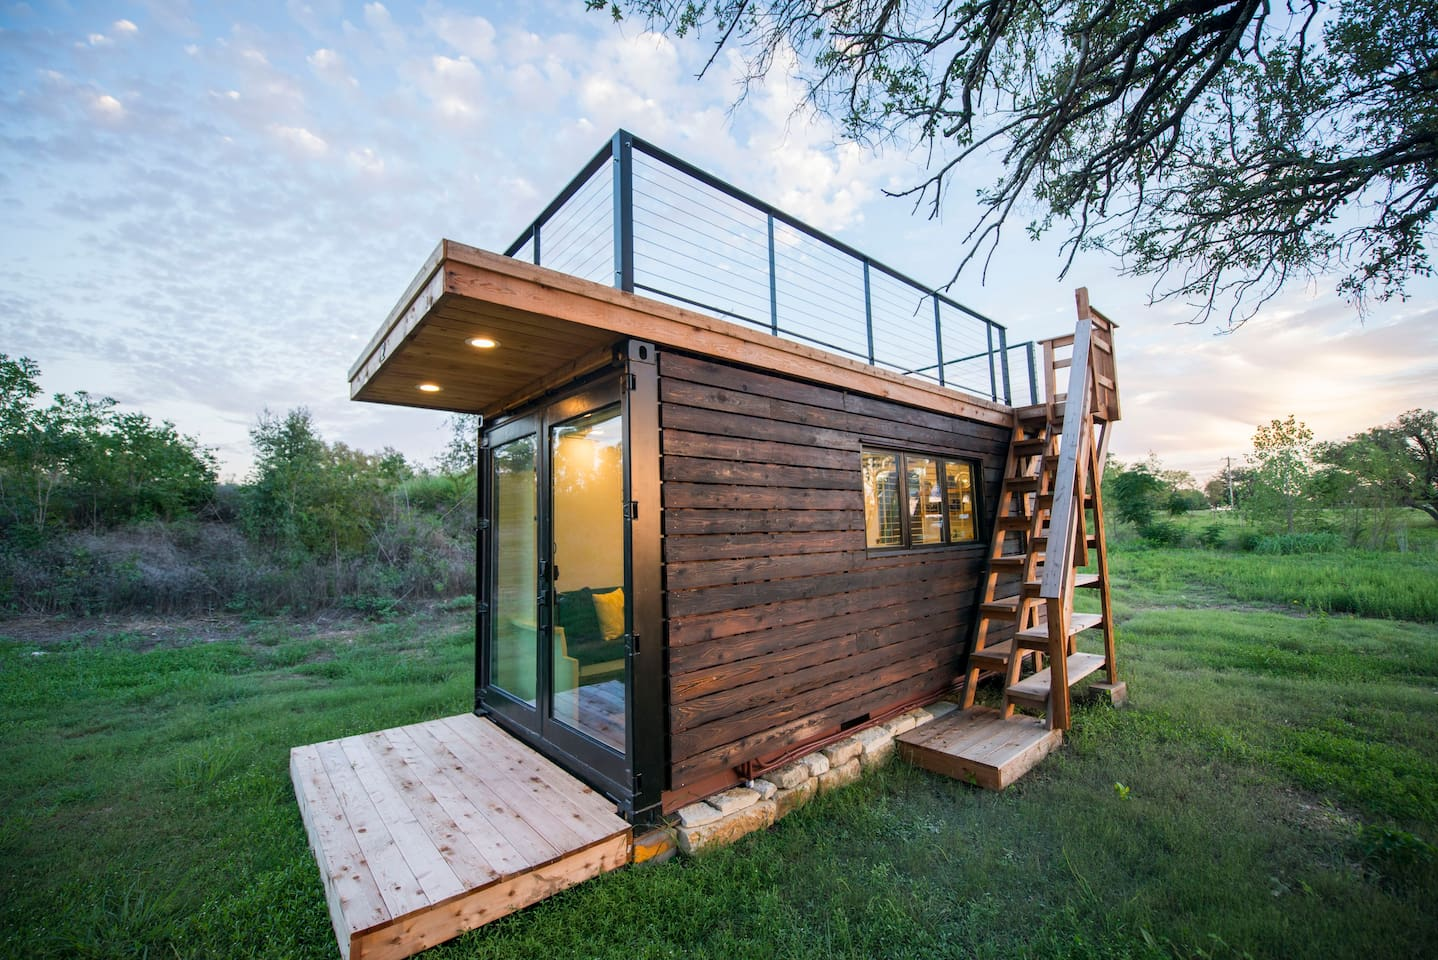 Our 20' container home clad in Shou Sugi Ban siding.